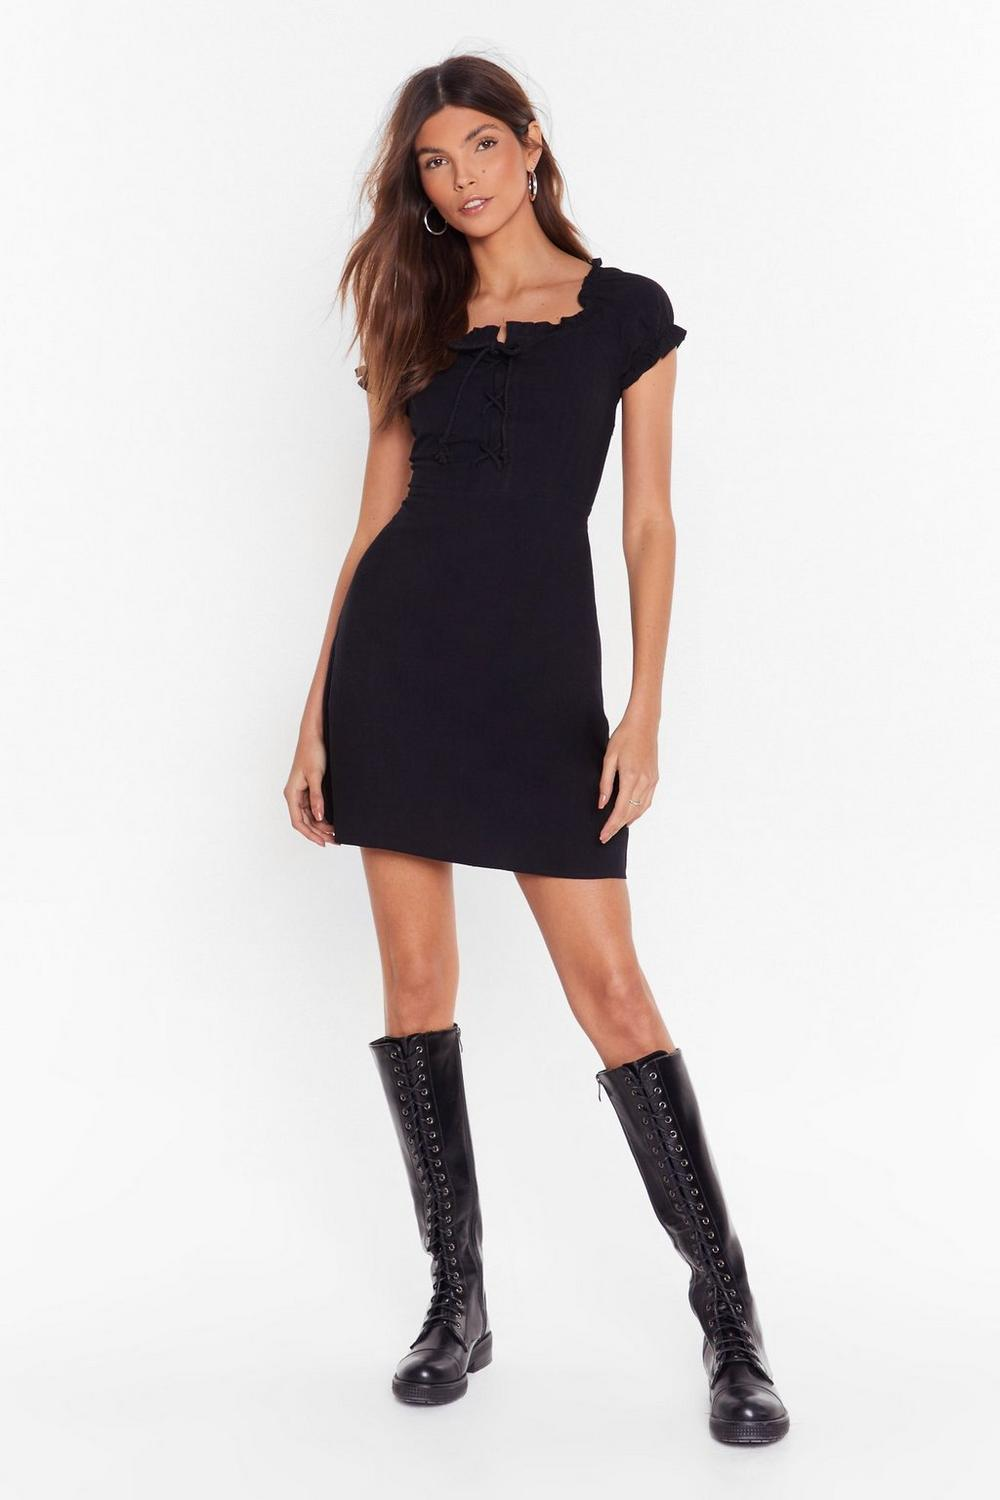 994885d680836 Tongue-Tied Lace-Up Dress | Shop Clothes at Nasty Gal!